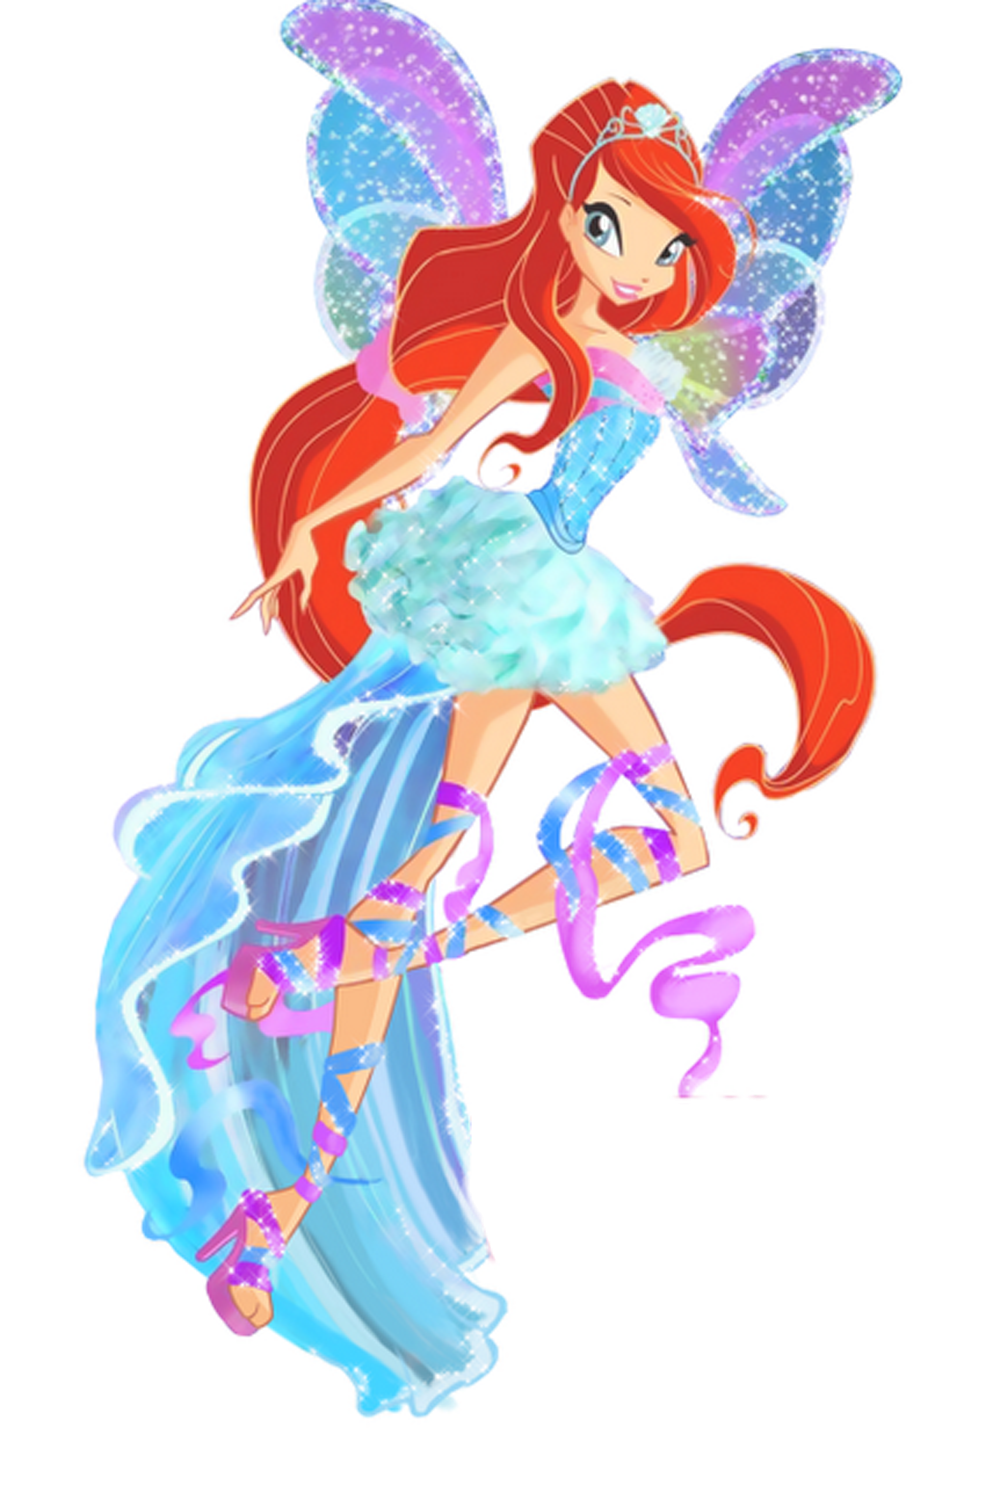 winx-club-bloom-harmonix-sirenix